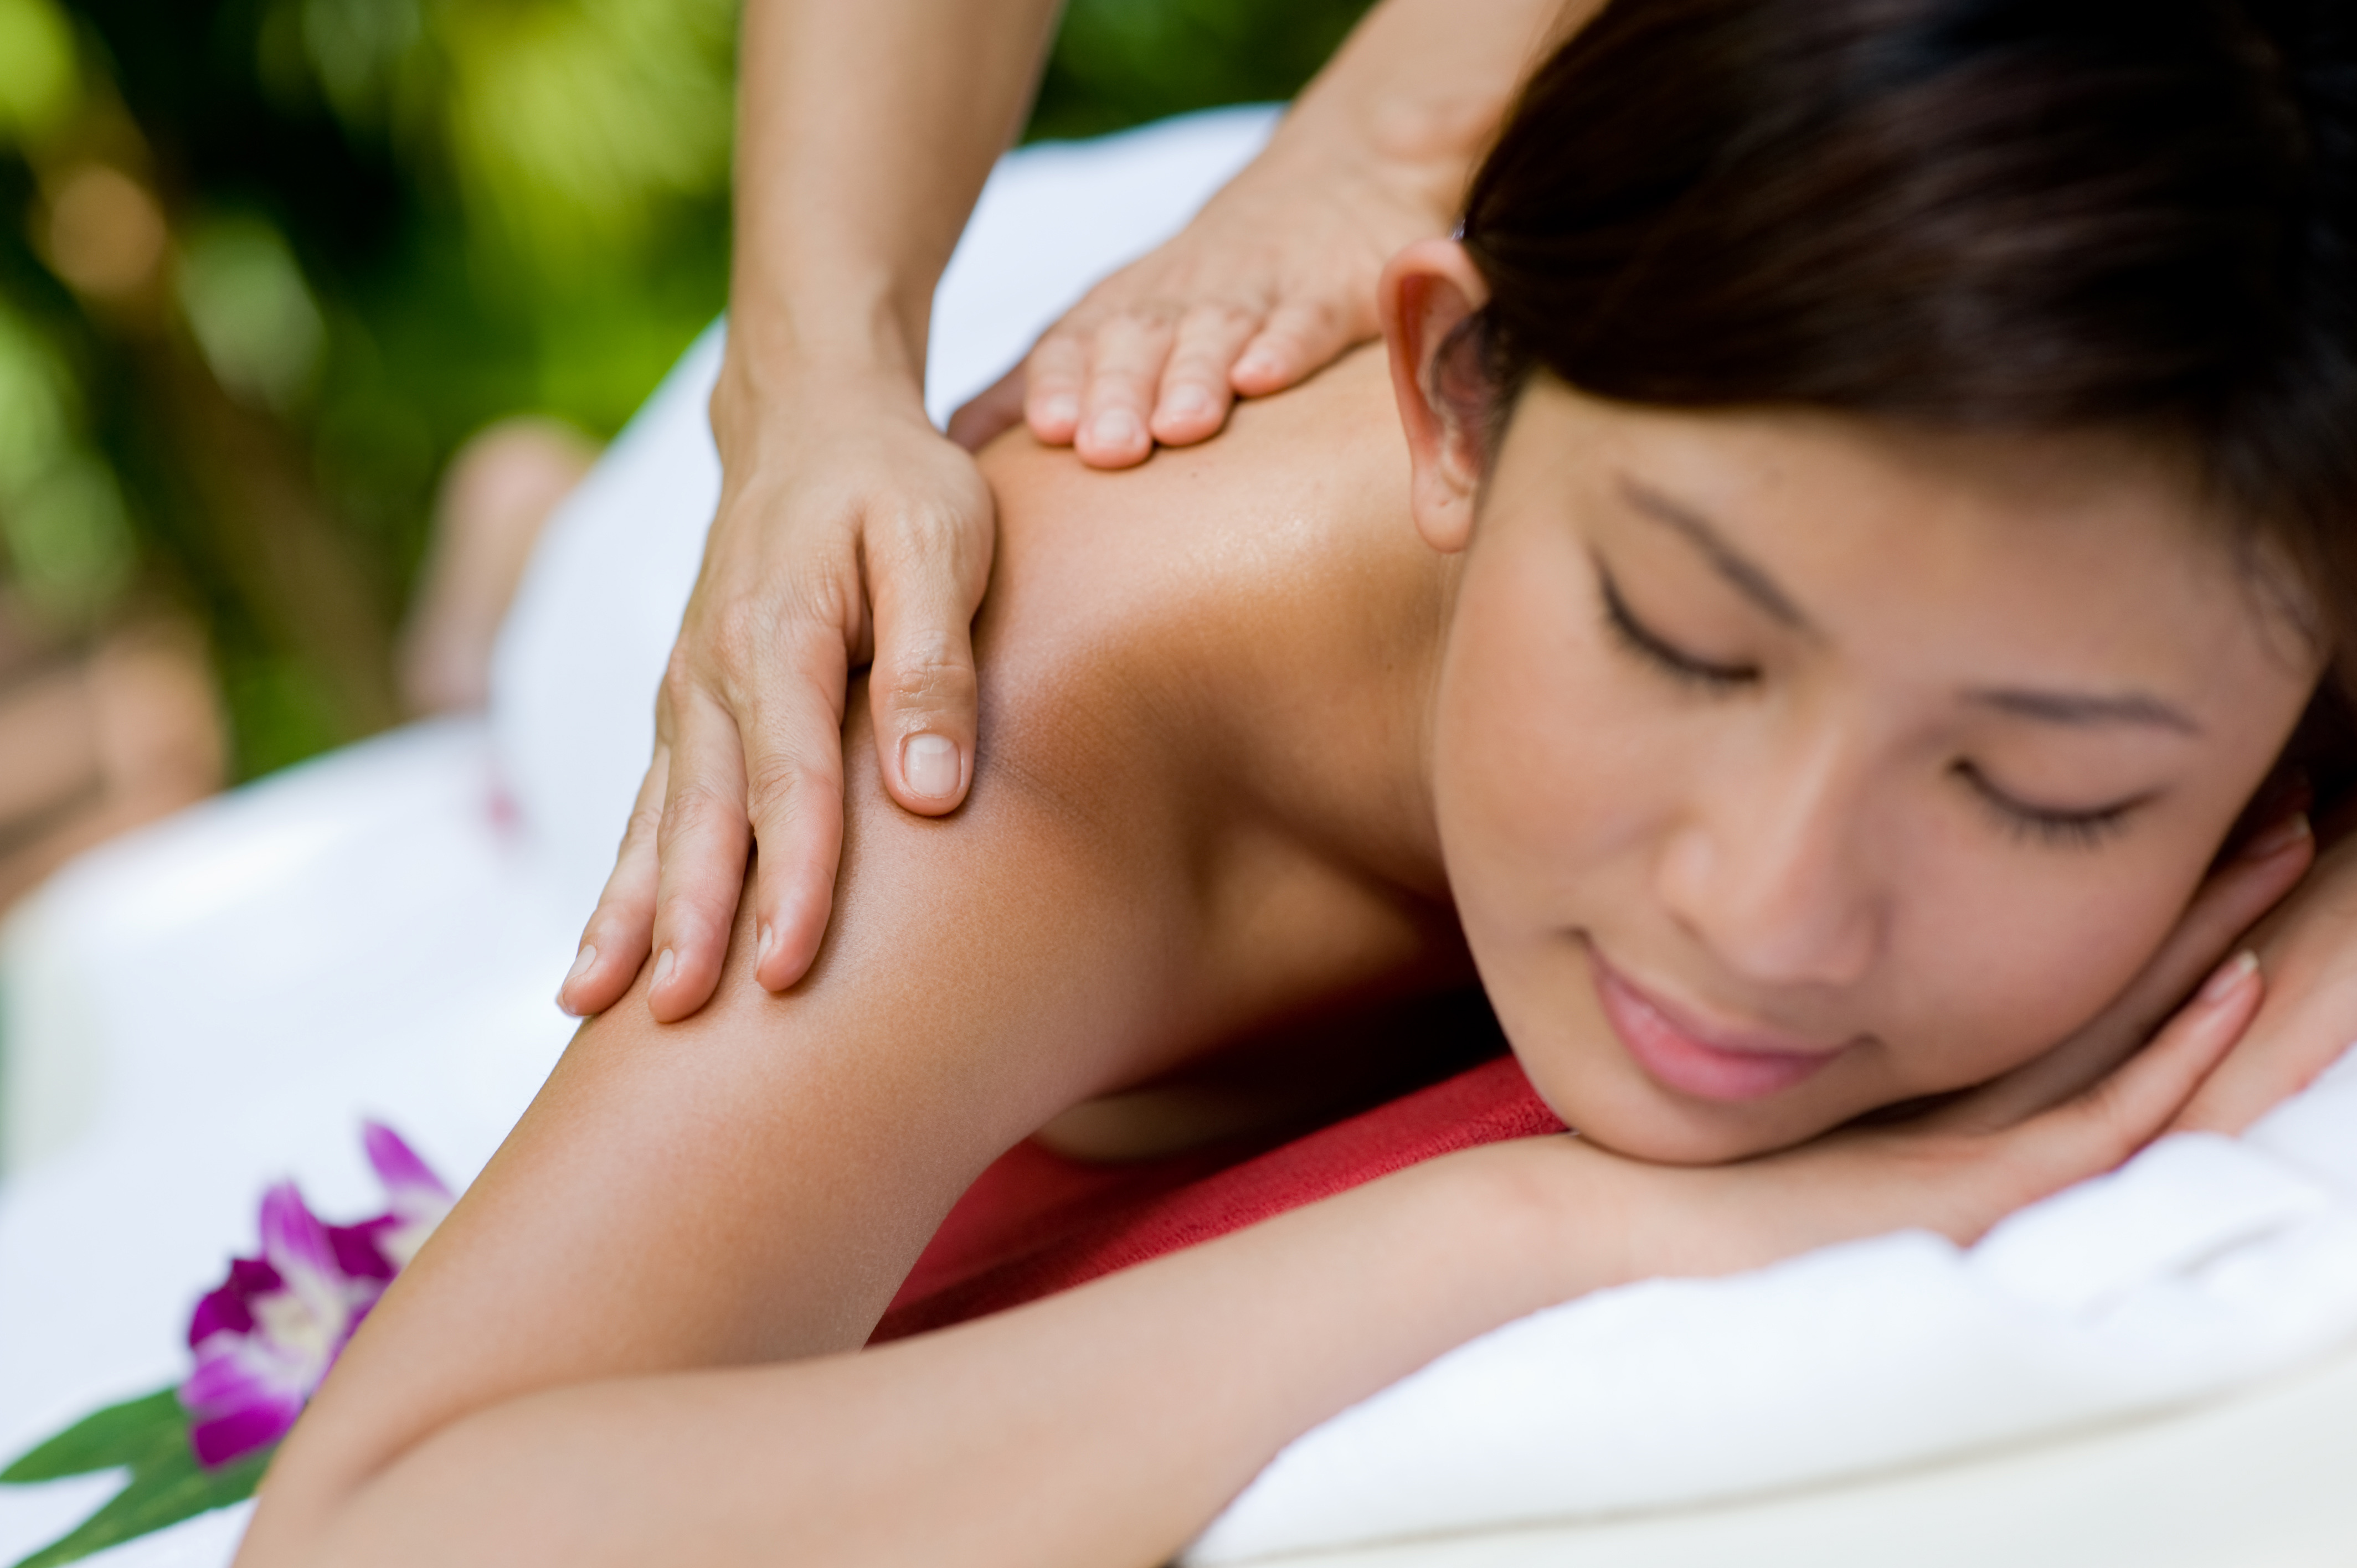 Acupuncture, cosmetology, or pet grooming